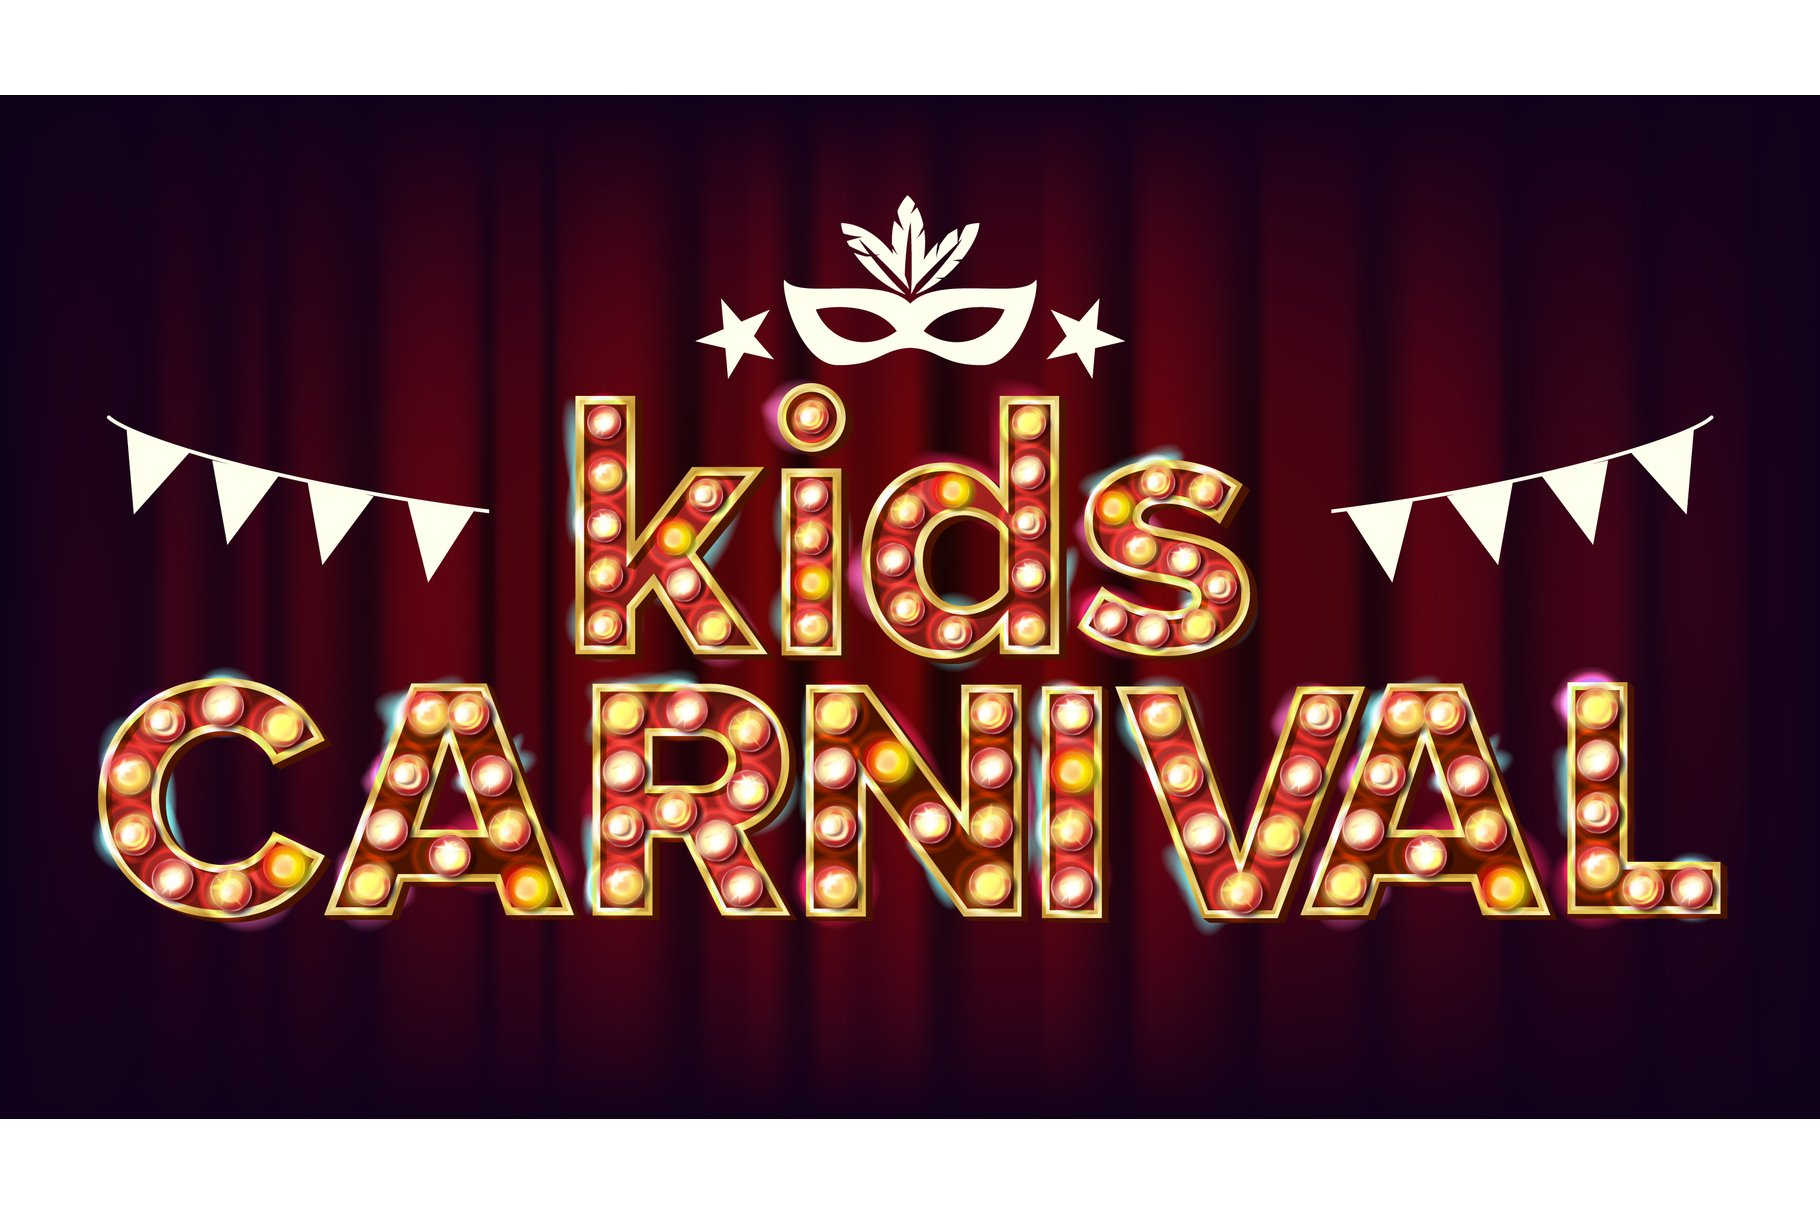 Kids Carnival Poster Vector. Carnival Glowing Lamps. For example image 1